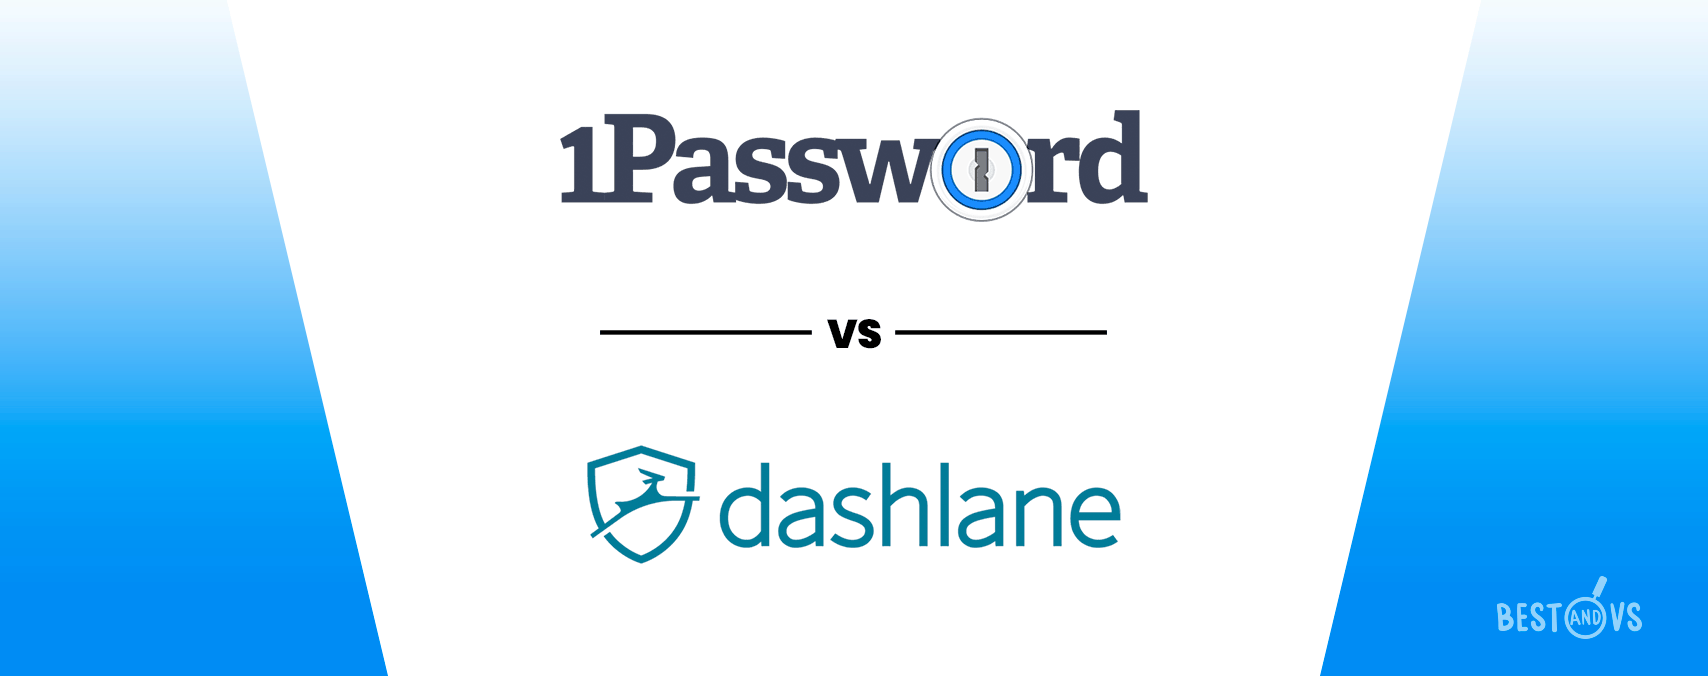 1password VS Dashlane (2019) Features and Pricing